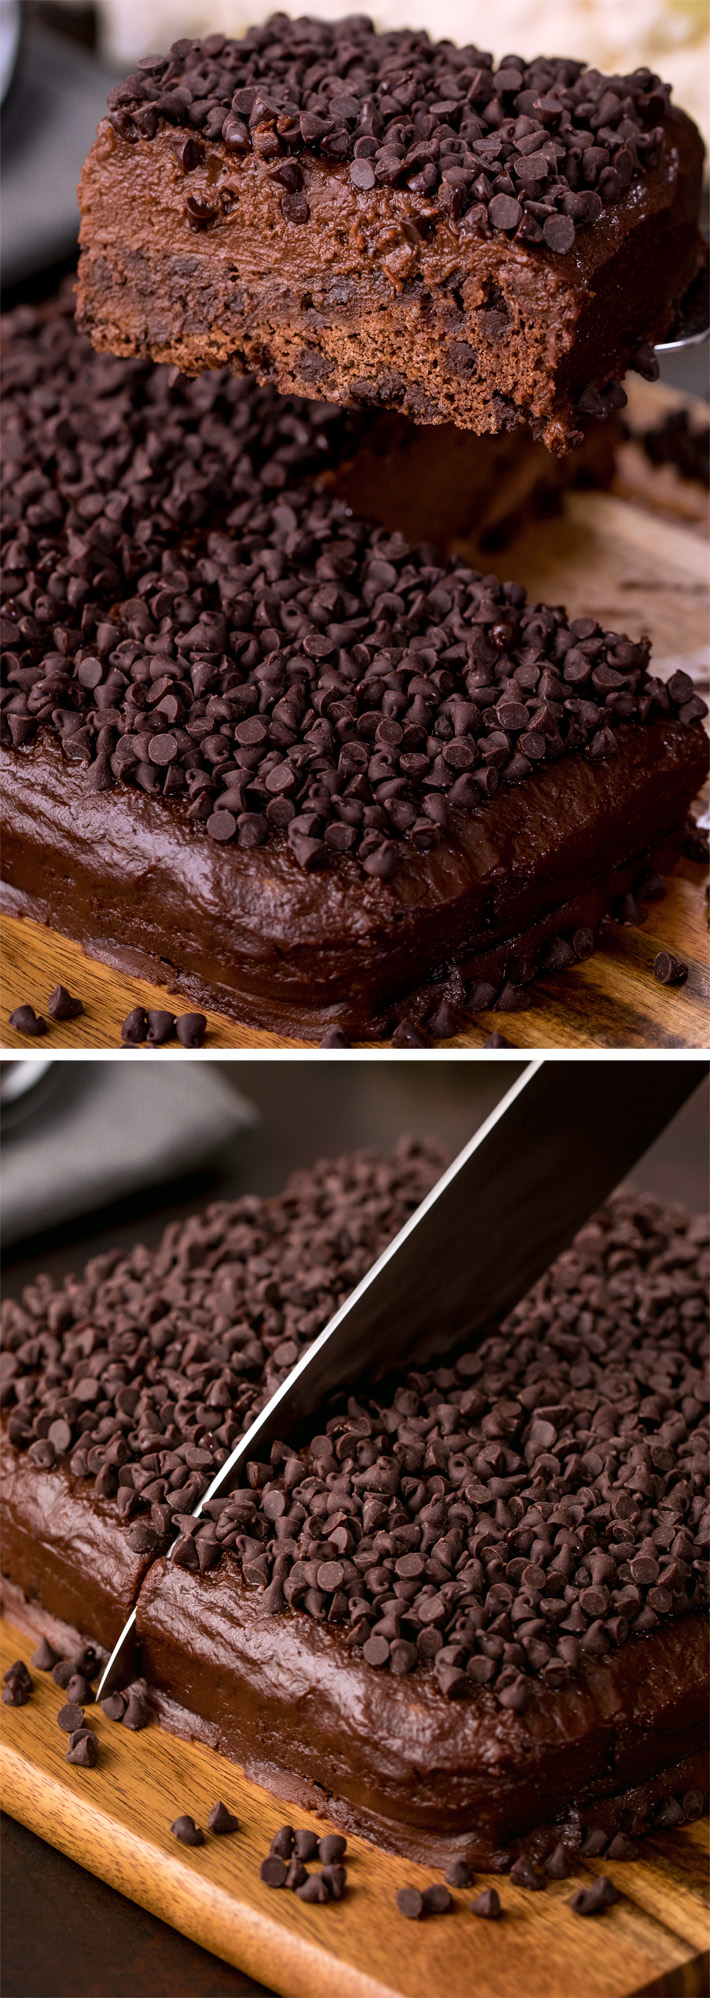 The famous chocolate cake that is secretly GOOD for you, but no one can ever tell!